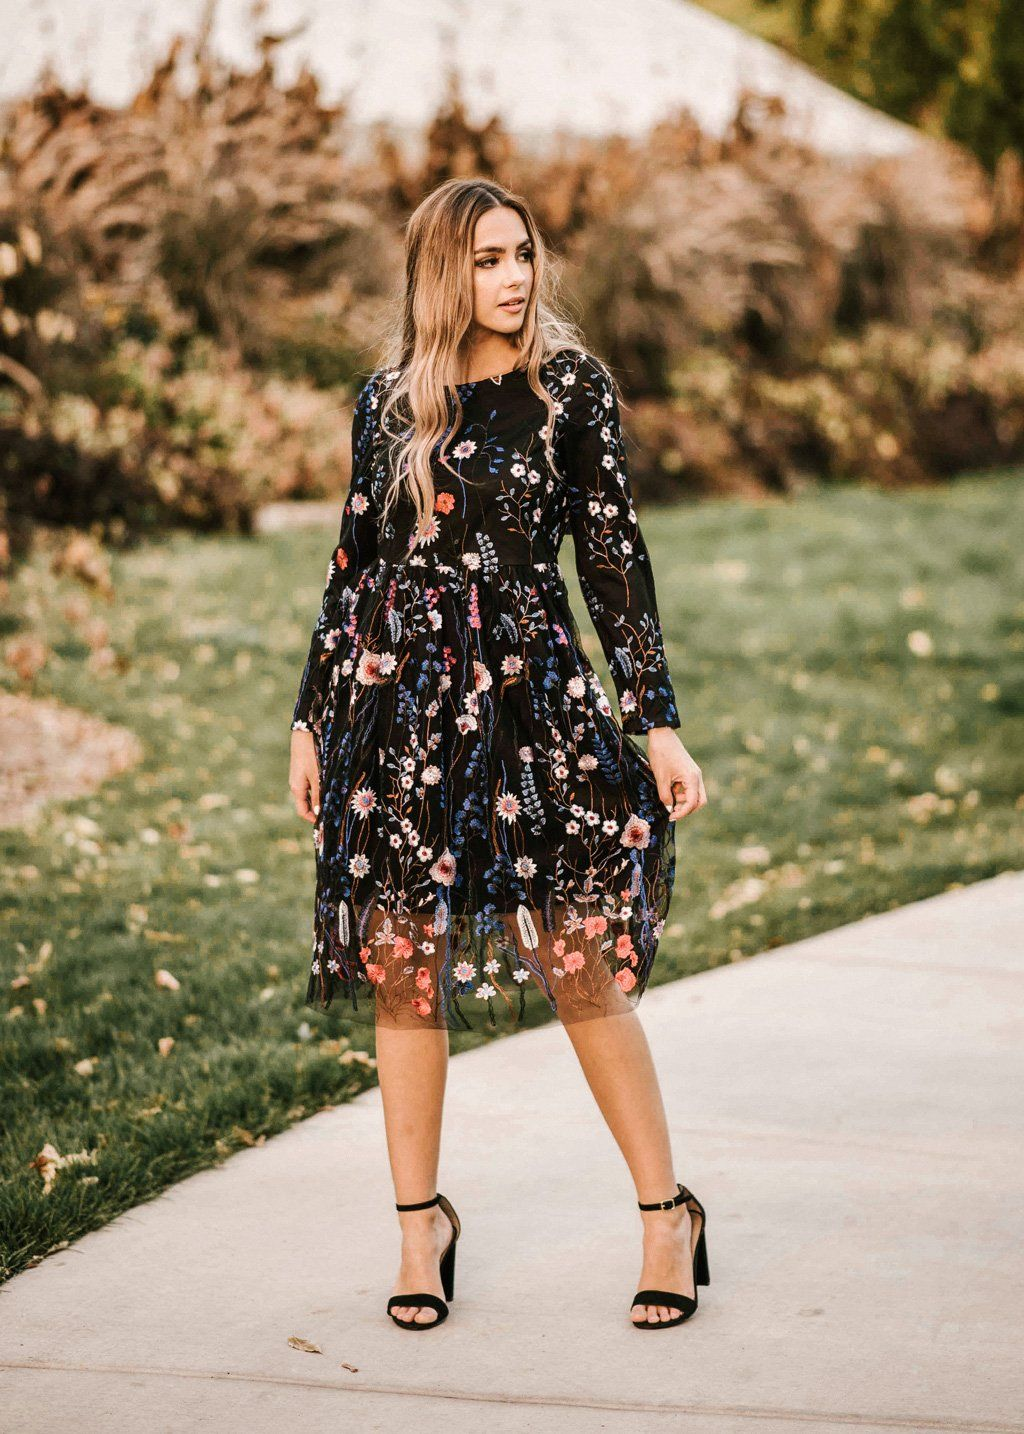 How to formal wear maxi dress